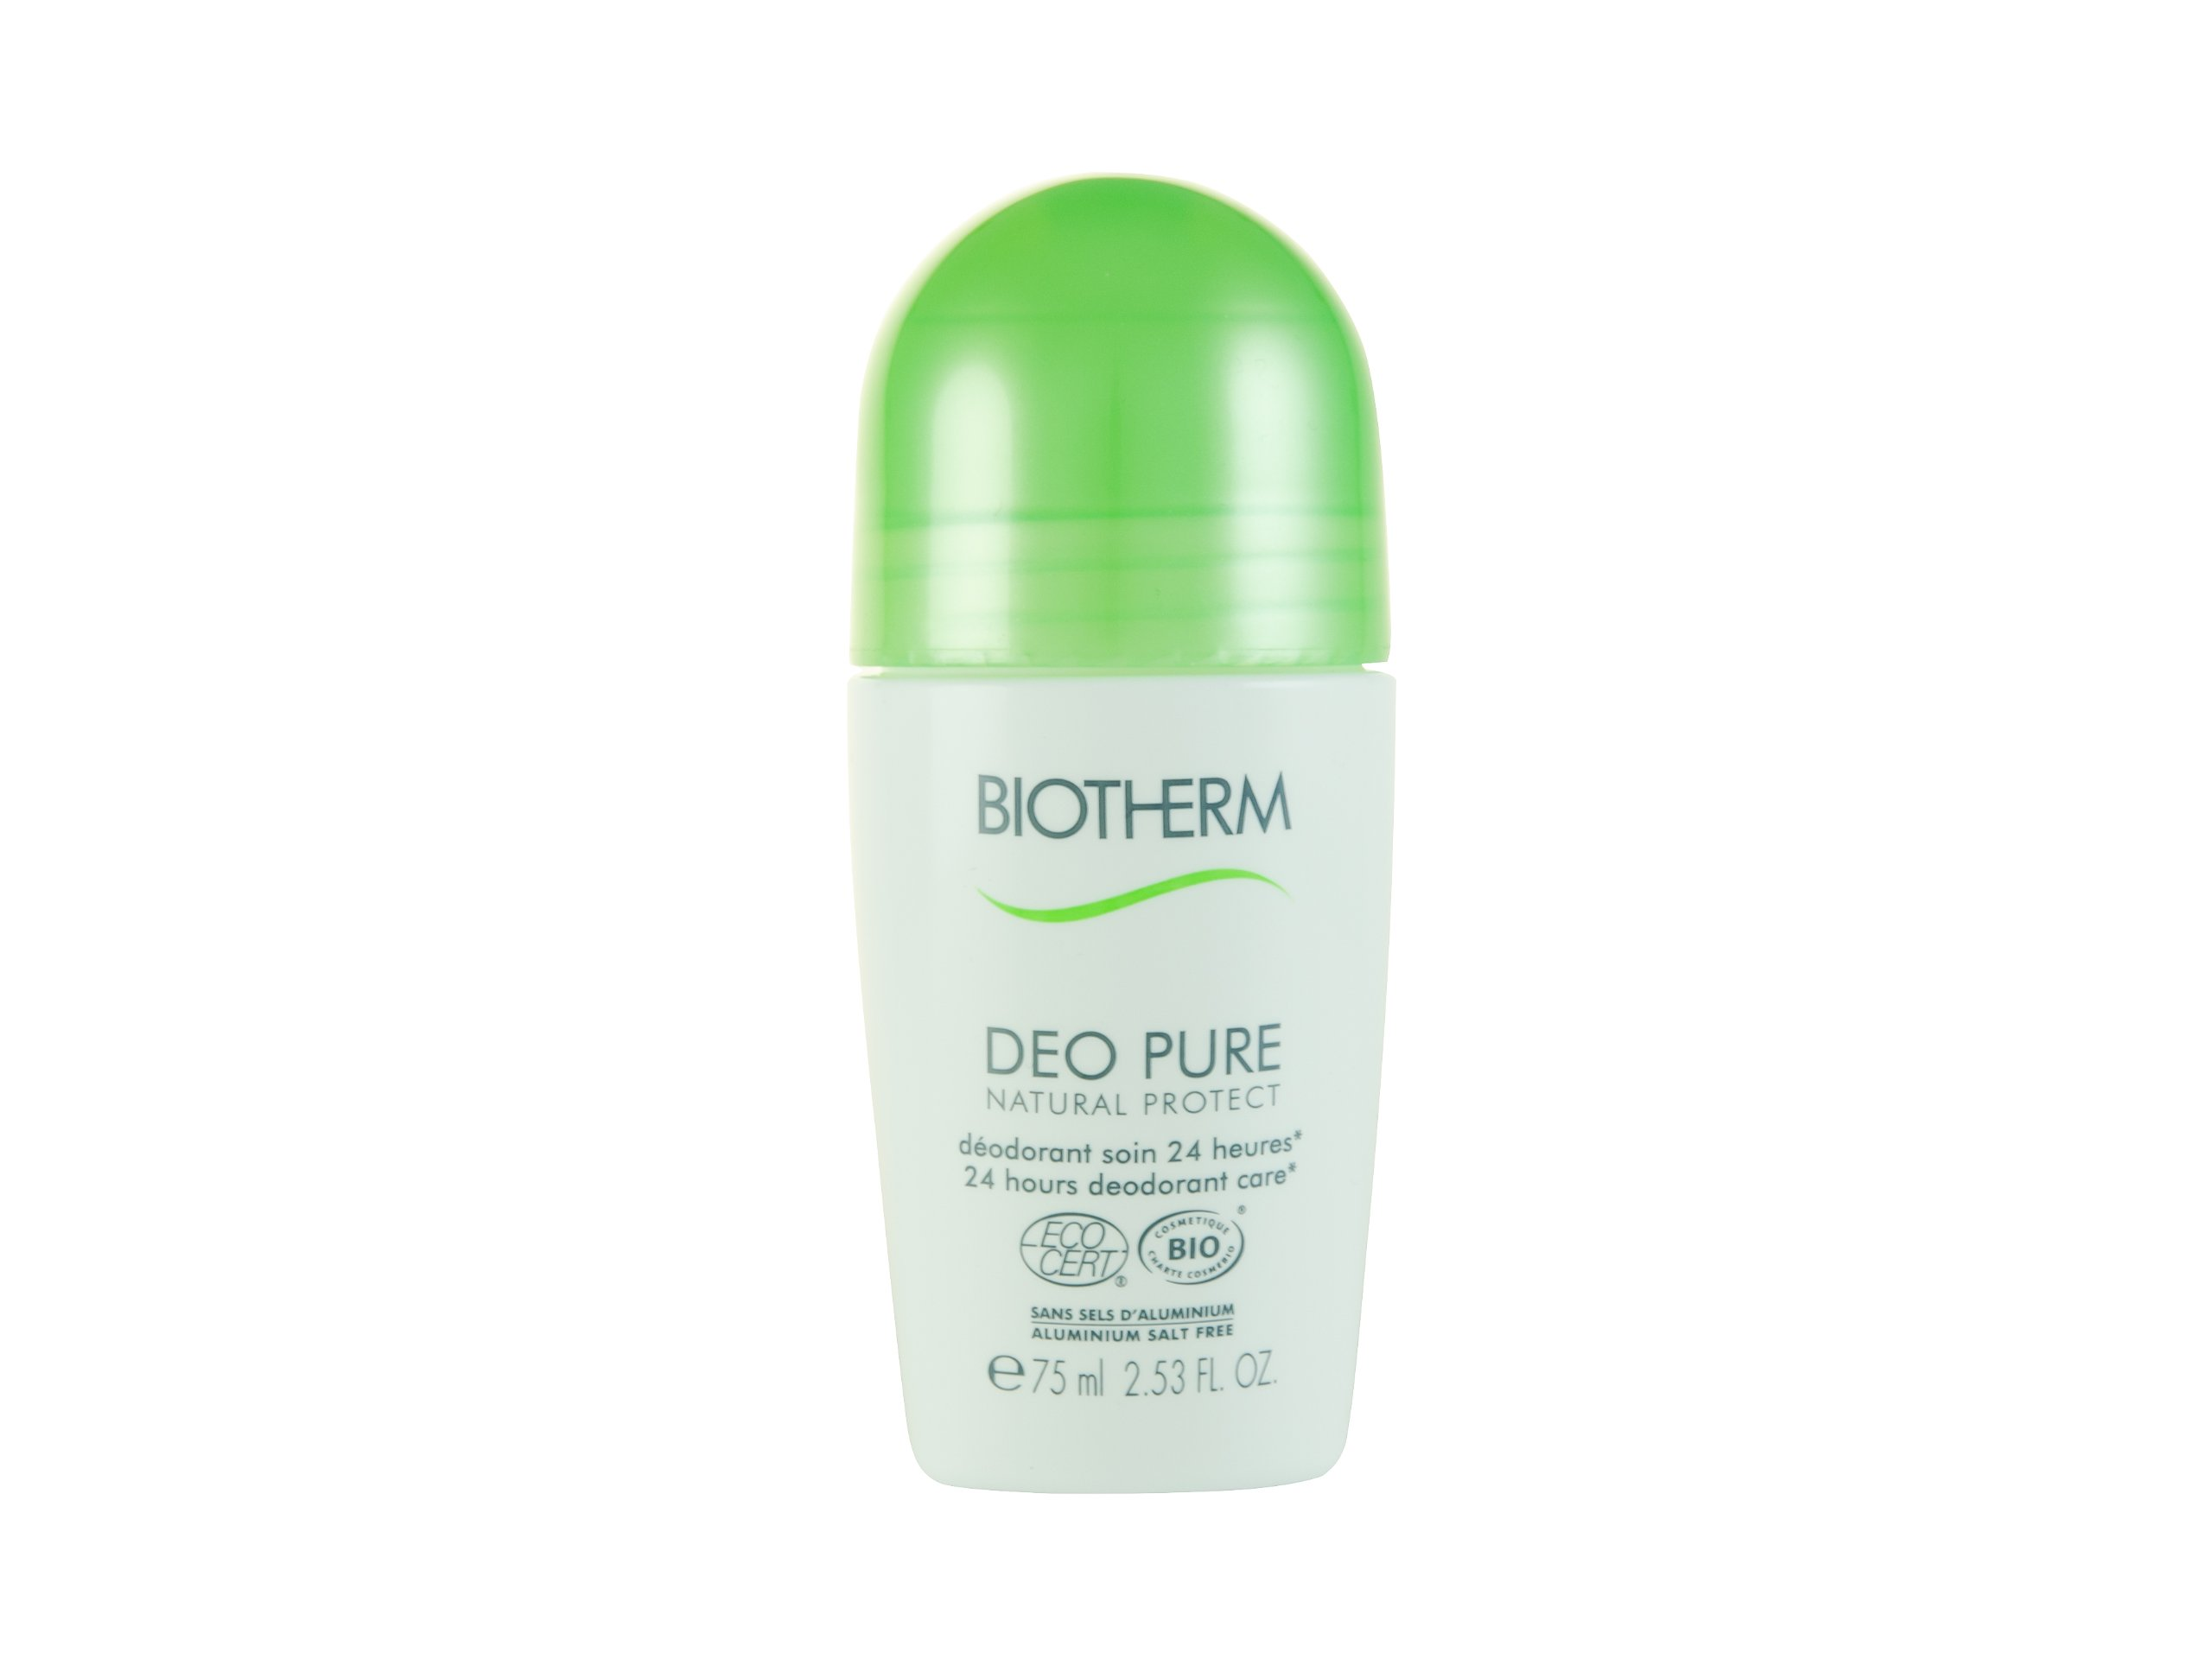 deo pure antiperspirant roll on by biotherm. Black Bedroom Furniture Sets. Home Design Ideas